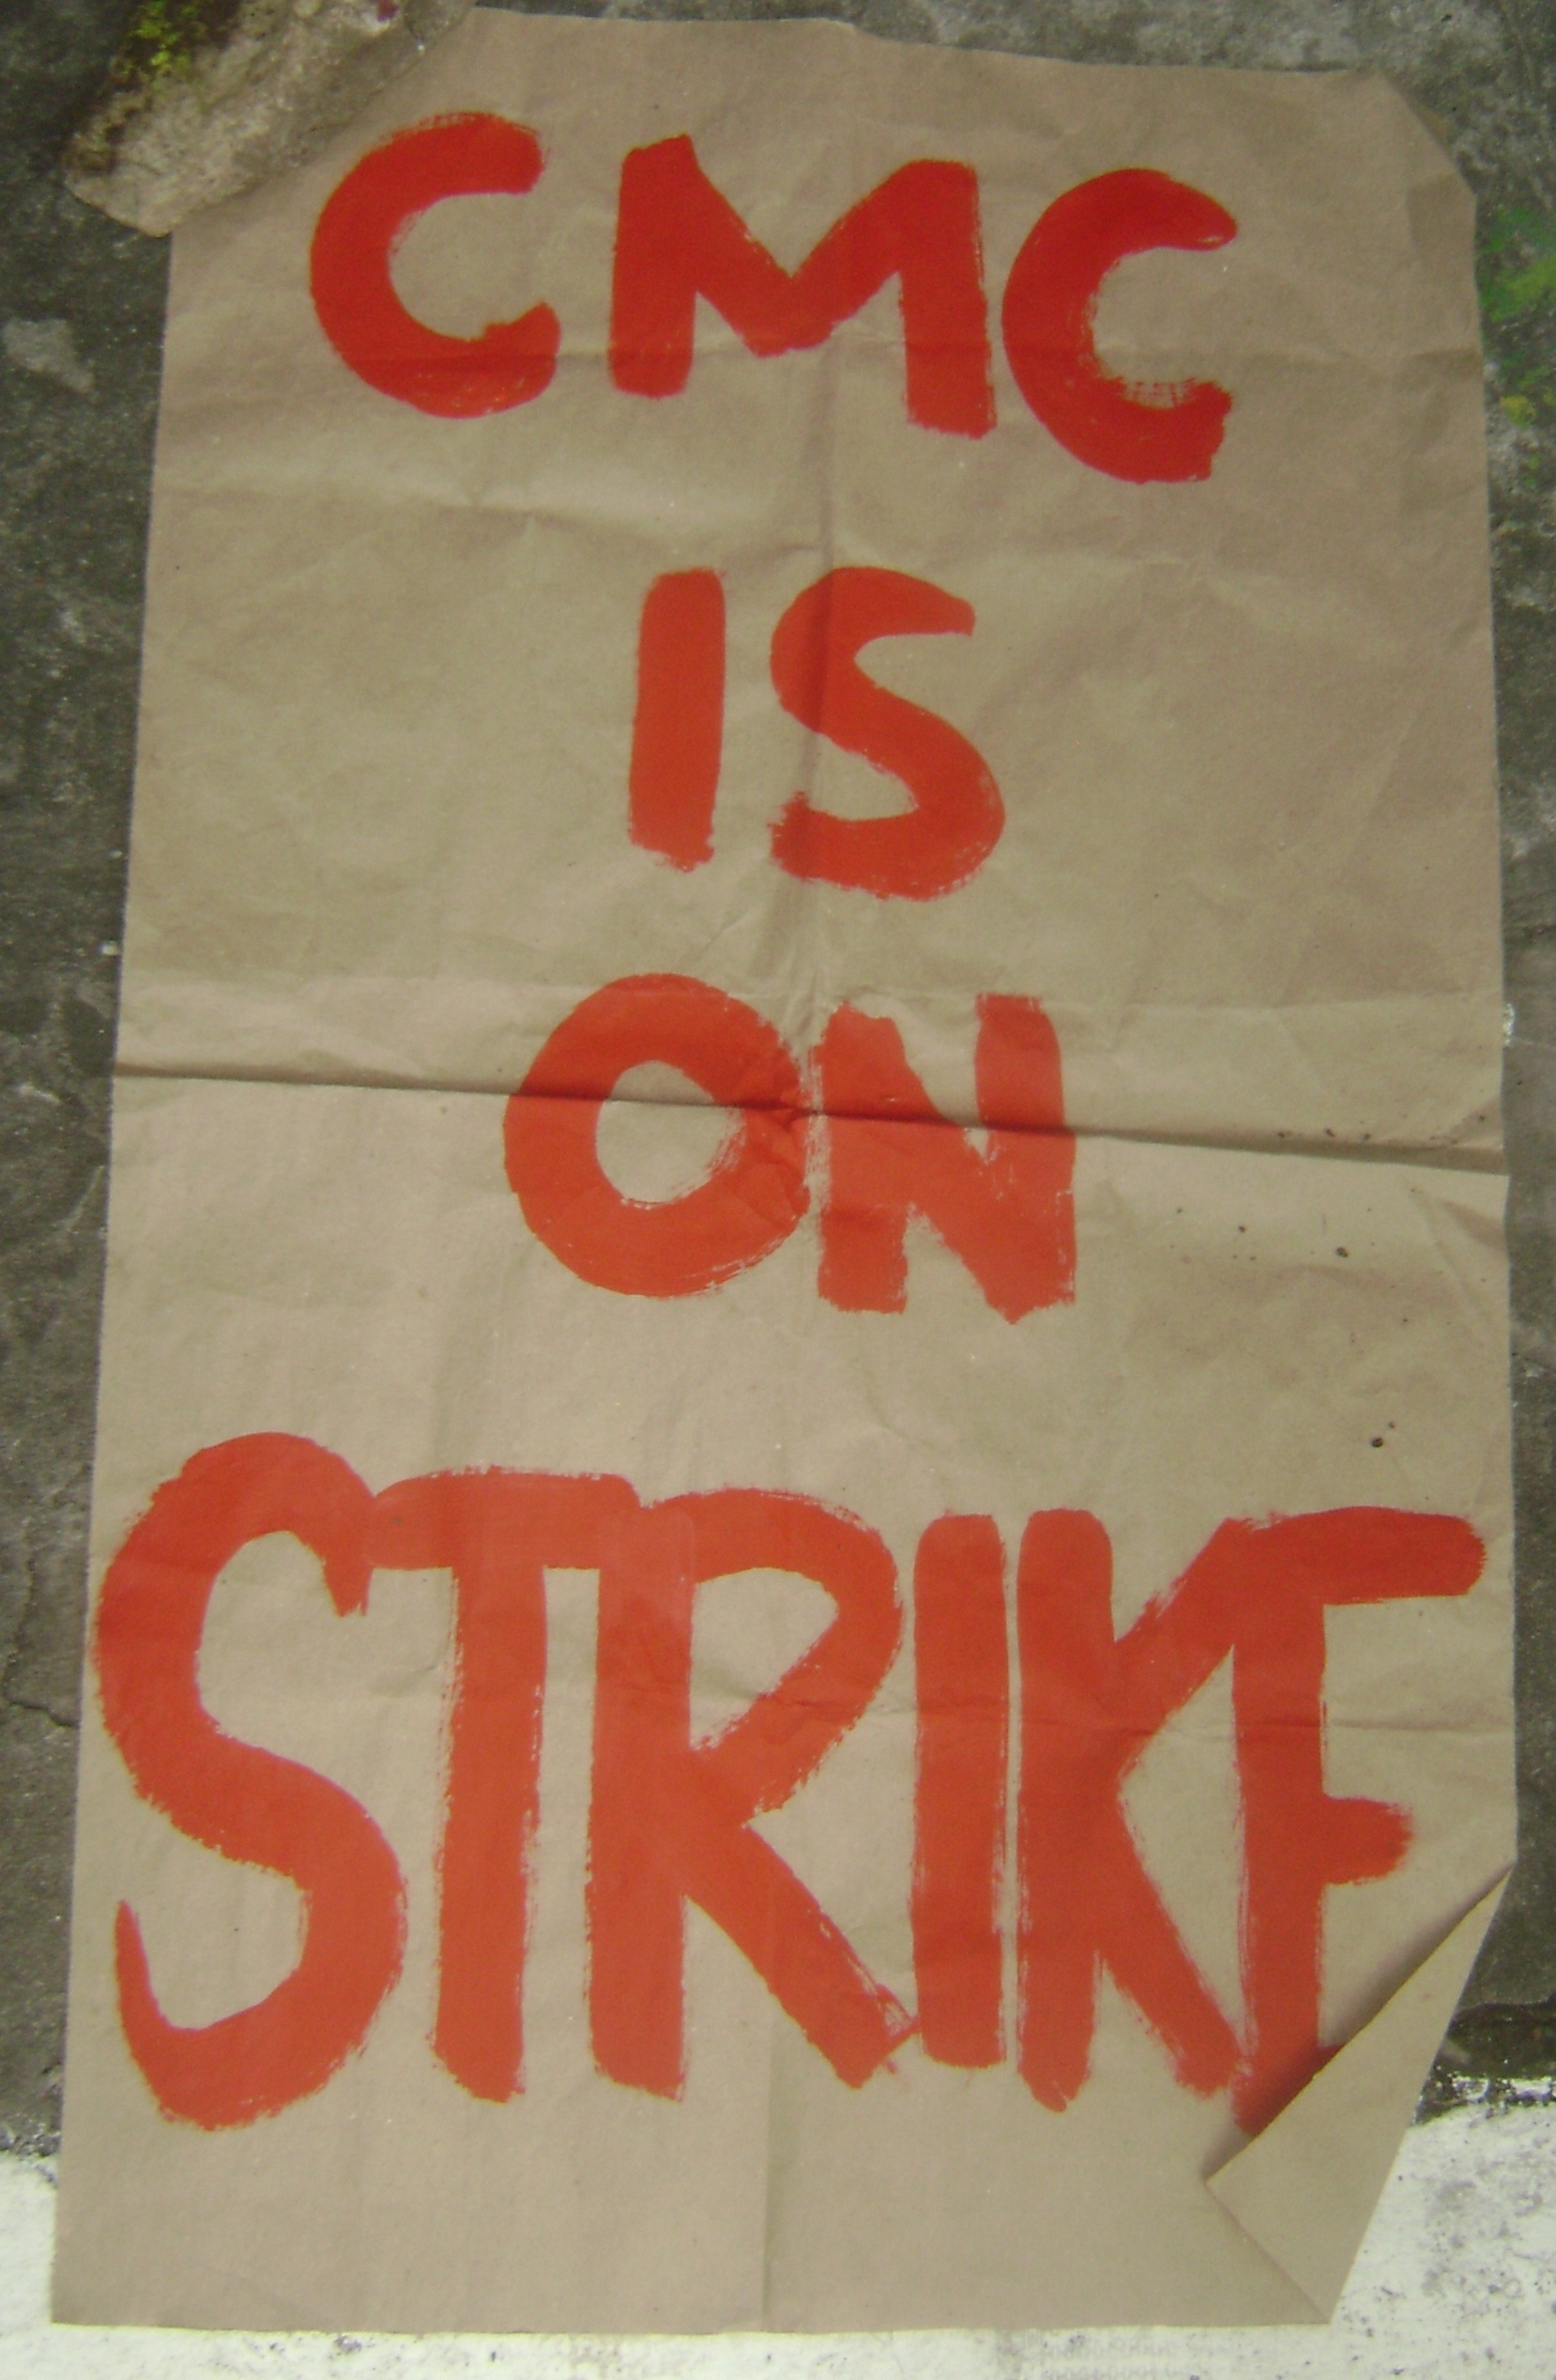 CMC on strike: Form 5 copies lit as students protest UP budget cut